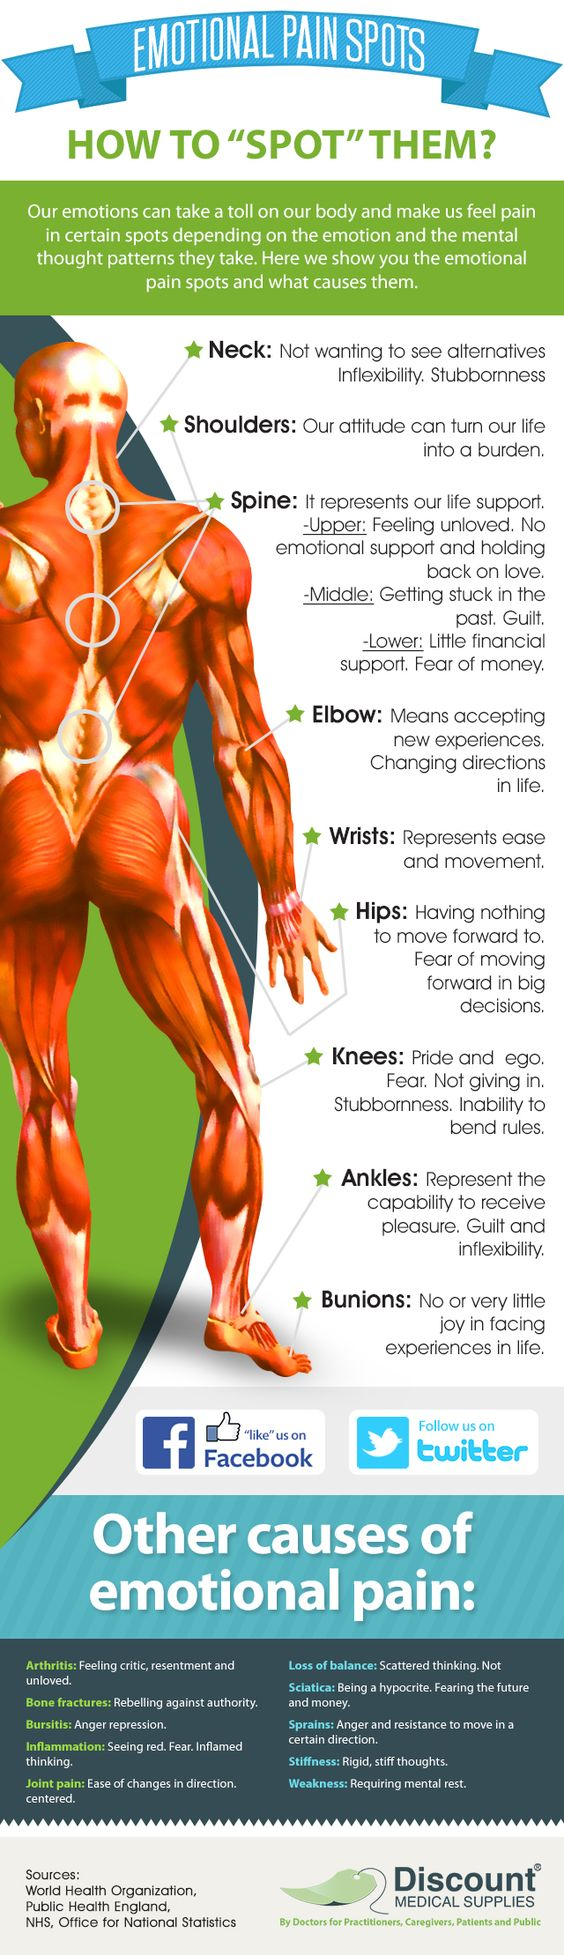 "Emotional Pain Spots... How to ""Spot"" them? #painrelief #painmanagement http://www.discountmedicalsupplies.com/doctors/health-news/positive-vs-negative-how-both-affect-our-health:"